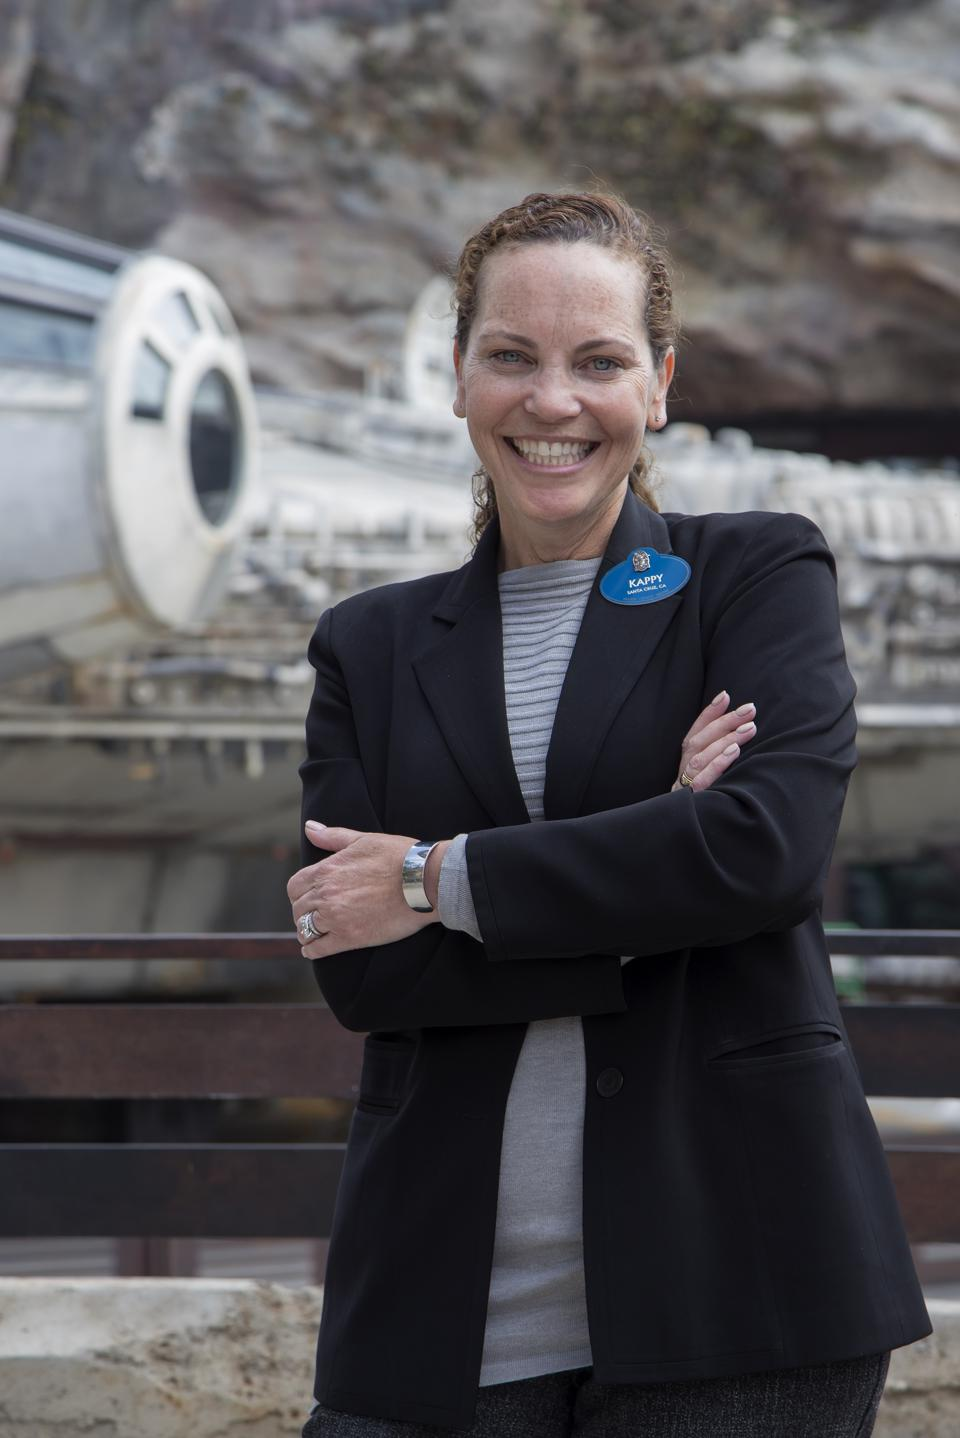 Kappy Thorsen is responsible for ensuring that the guest experience at Disneyland is out of this world